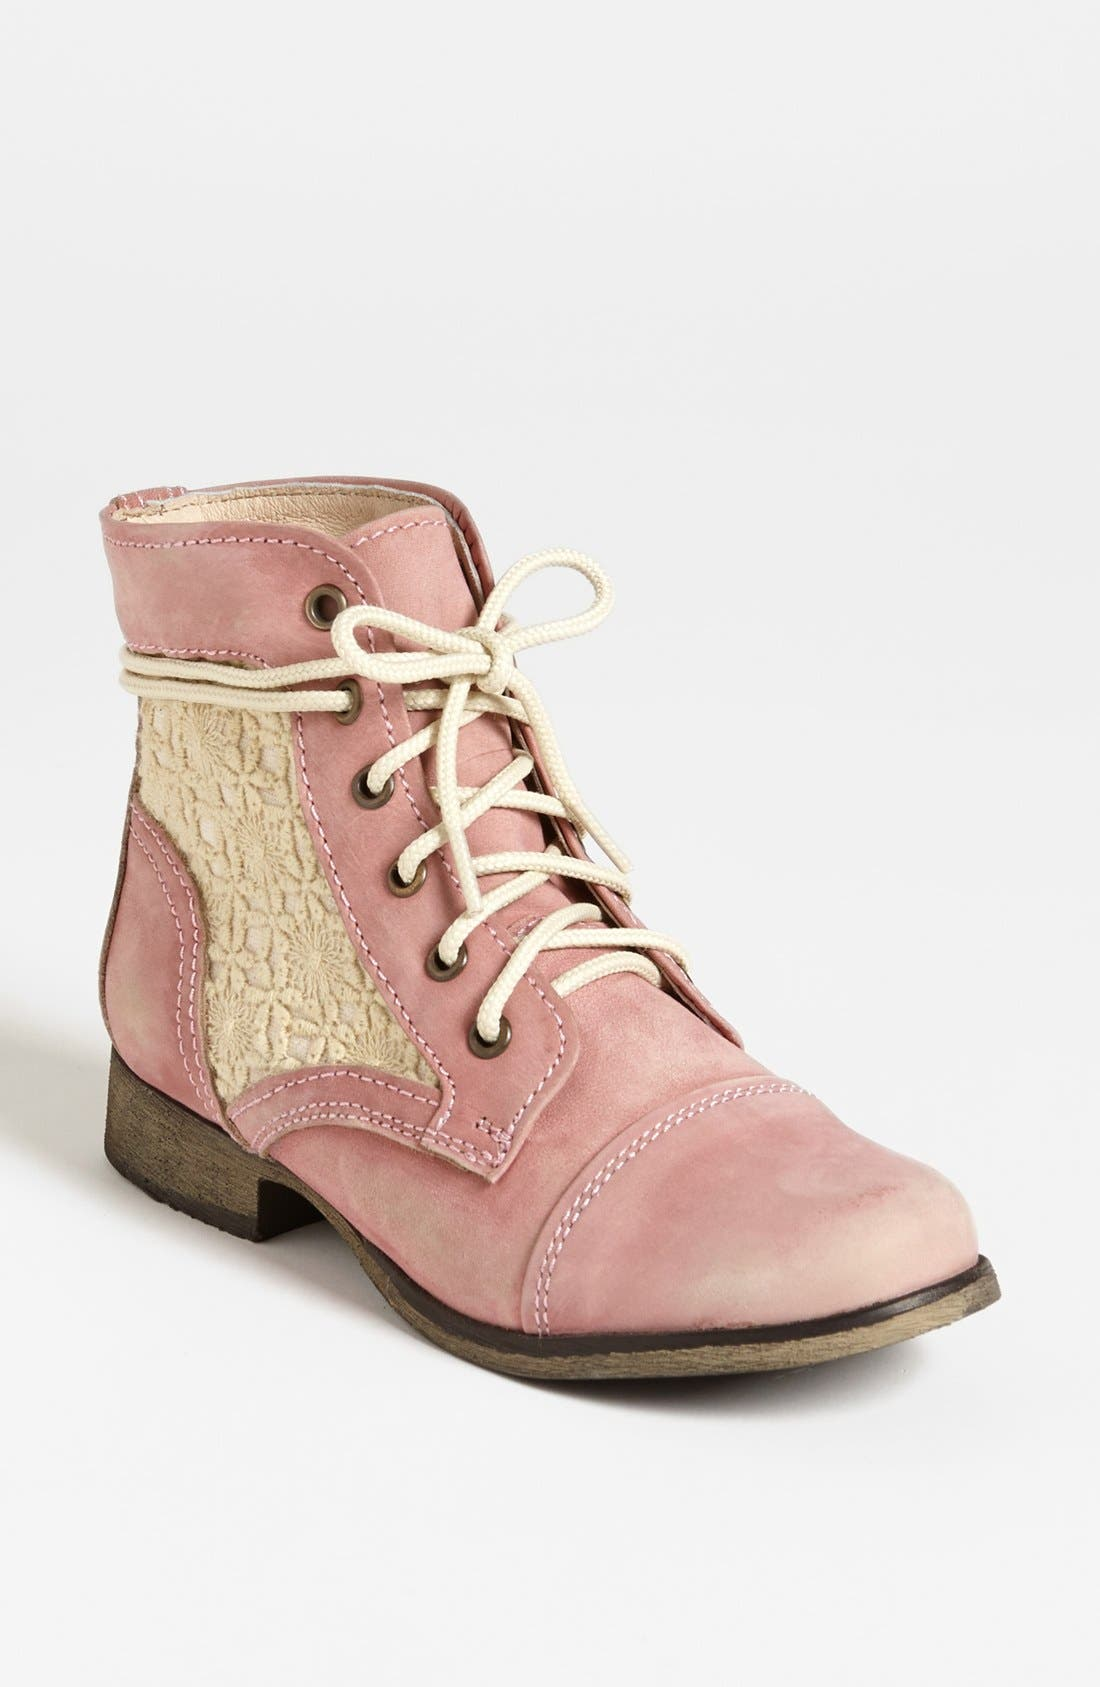 Alternate Image 1 Selected - Steve Madden 'Thundr-C' Boot